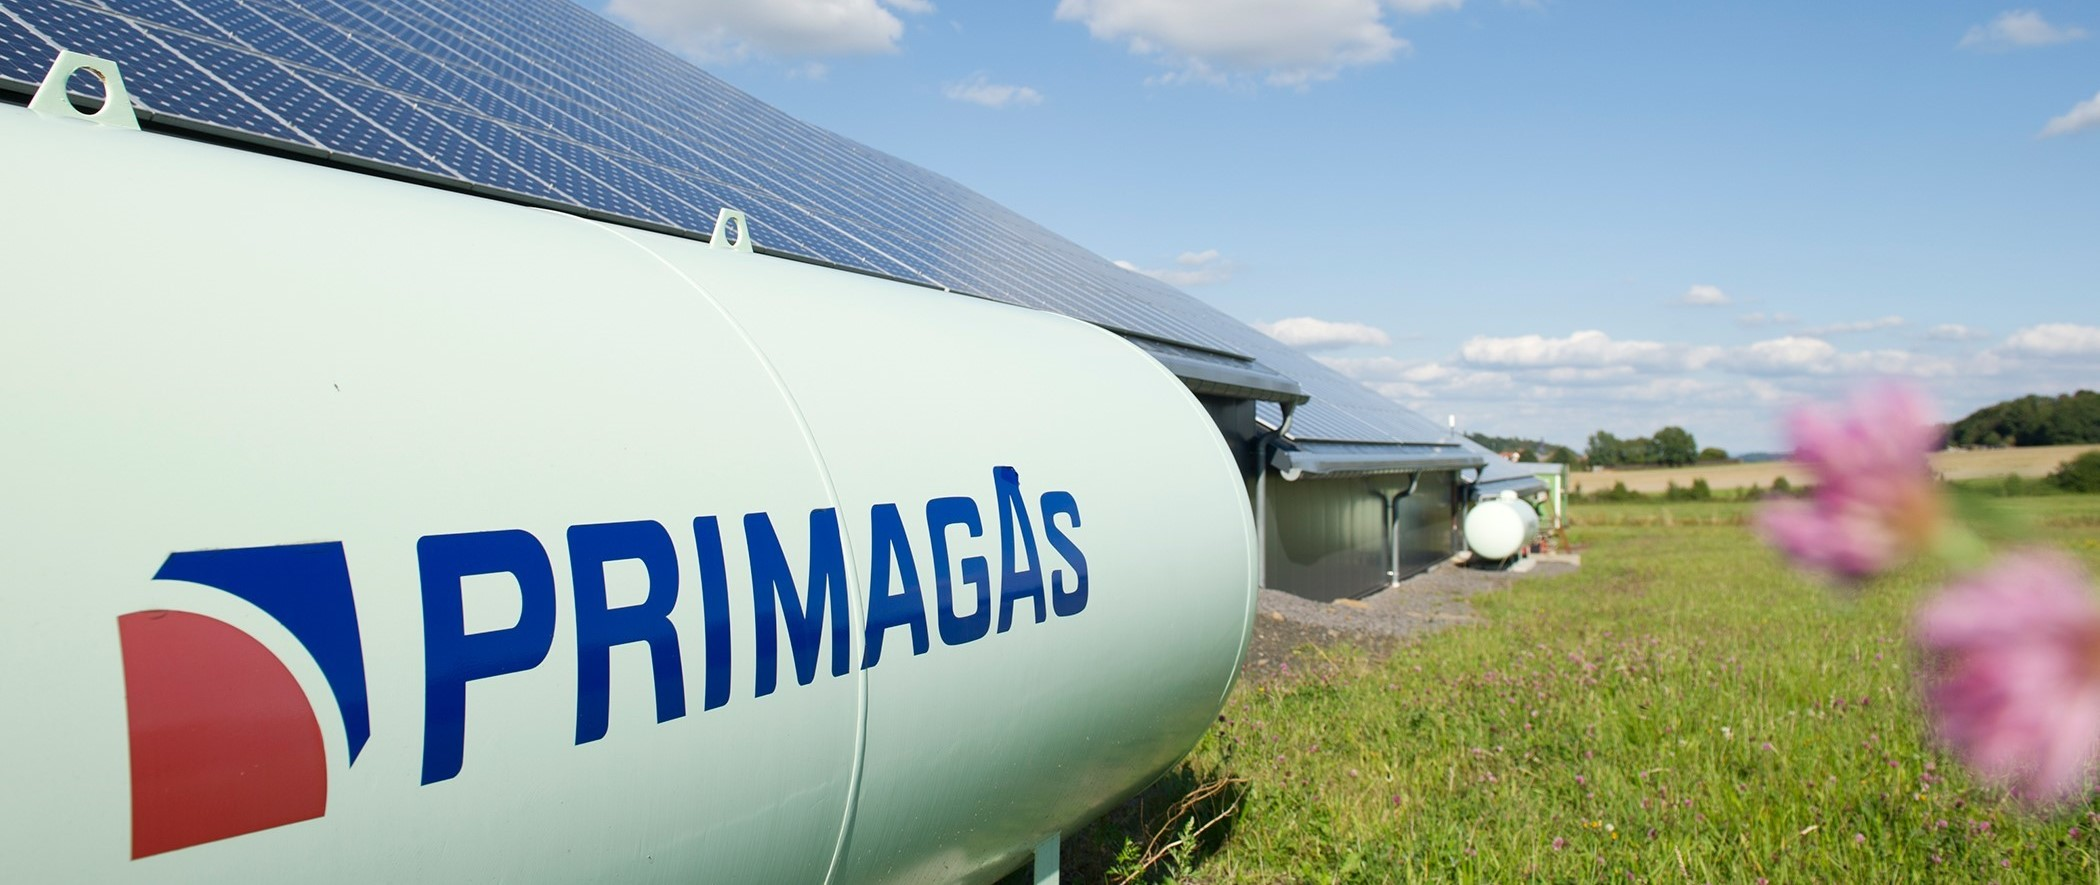 Primagas Germany – expanding our commitment to climate protection